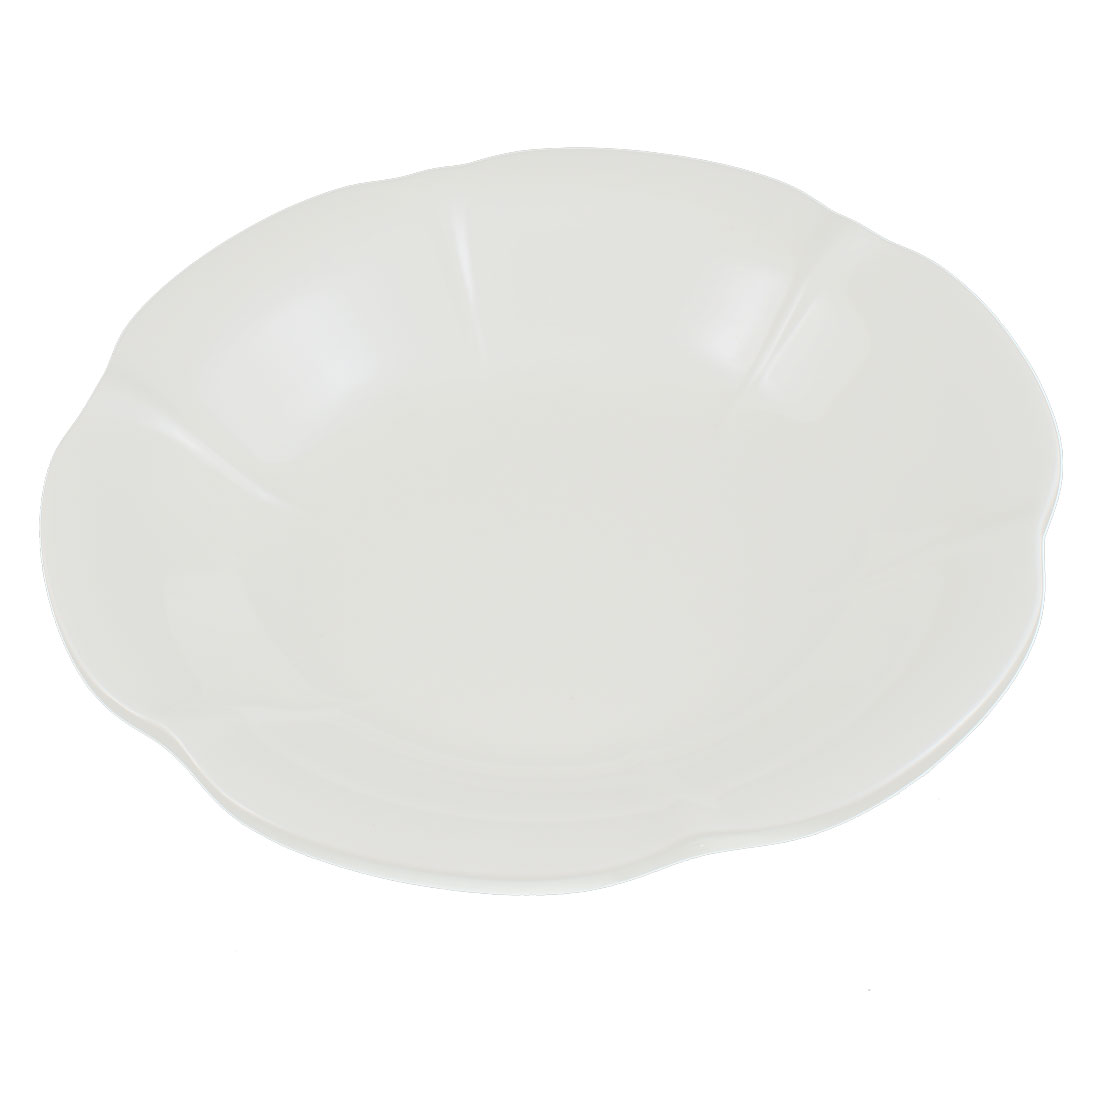 Hotel Restaurant Lotus Shaped Food Dessert Salad Dish Plate White 22cm Dia